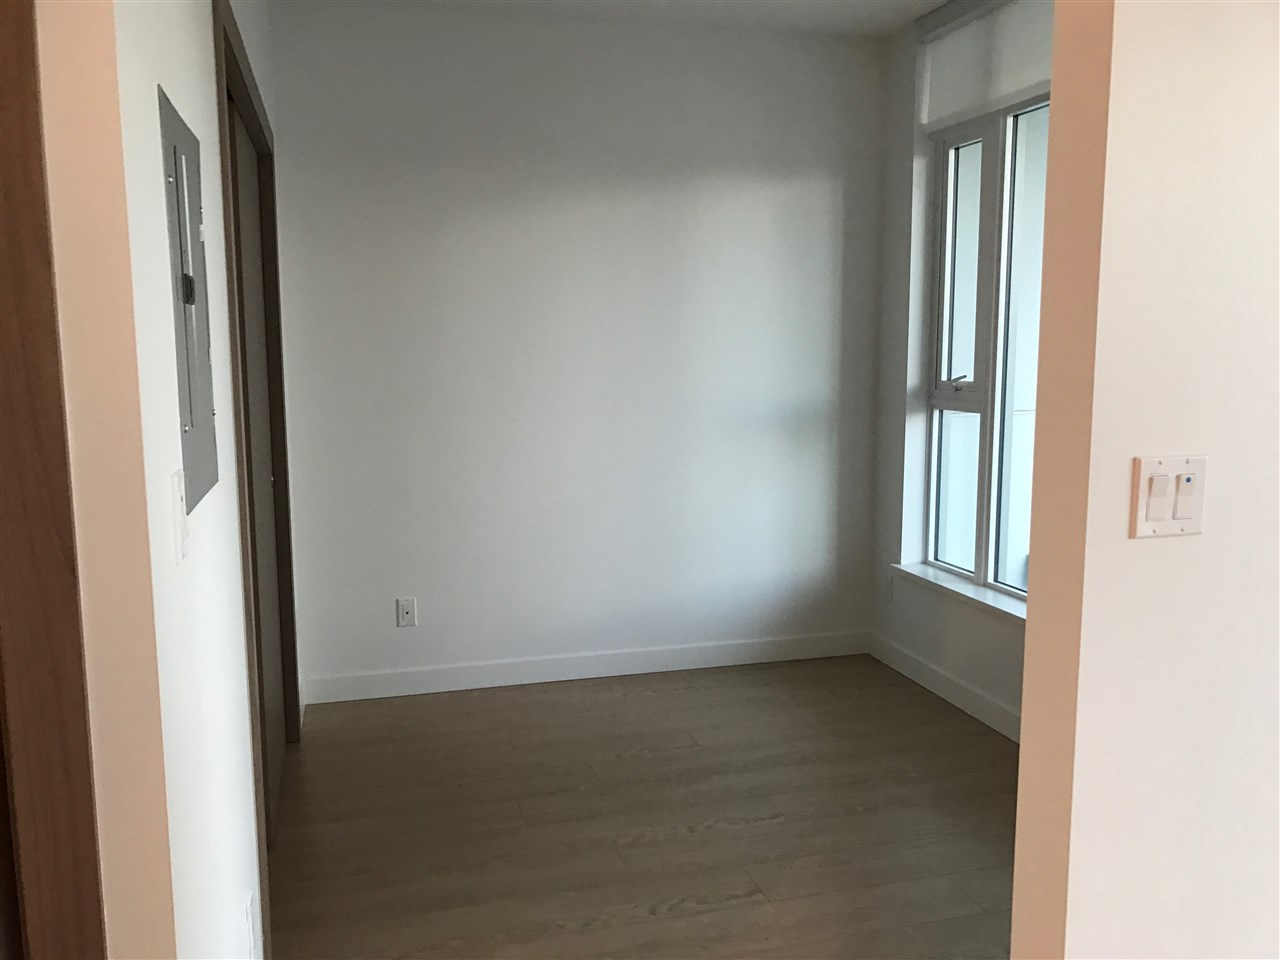 Condo Apartment at 502 6538 NELSON AVENUE, Unit 502, Burnaby South, British Columbia. Image 5